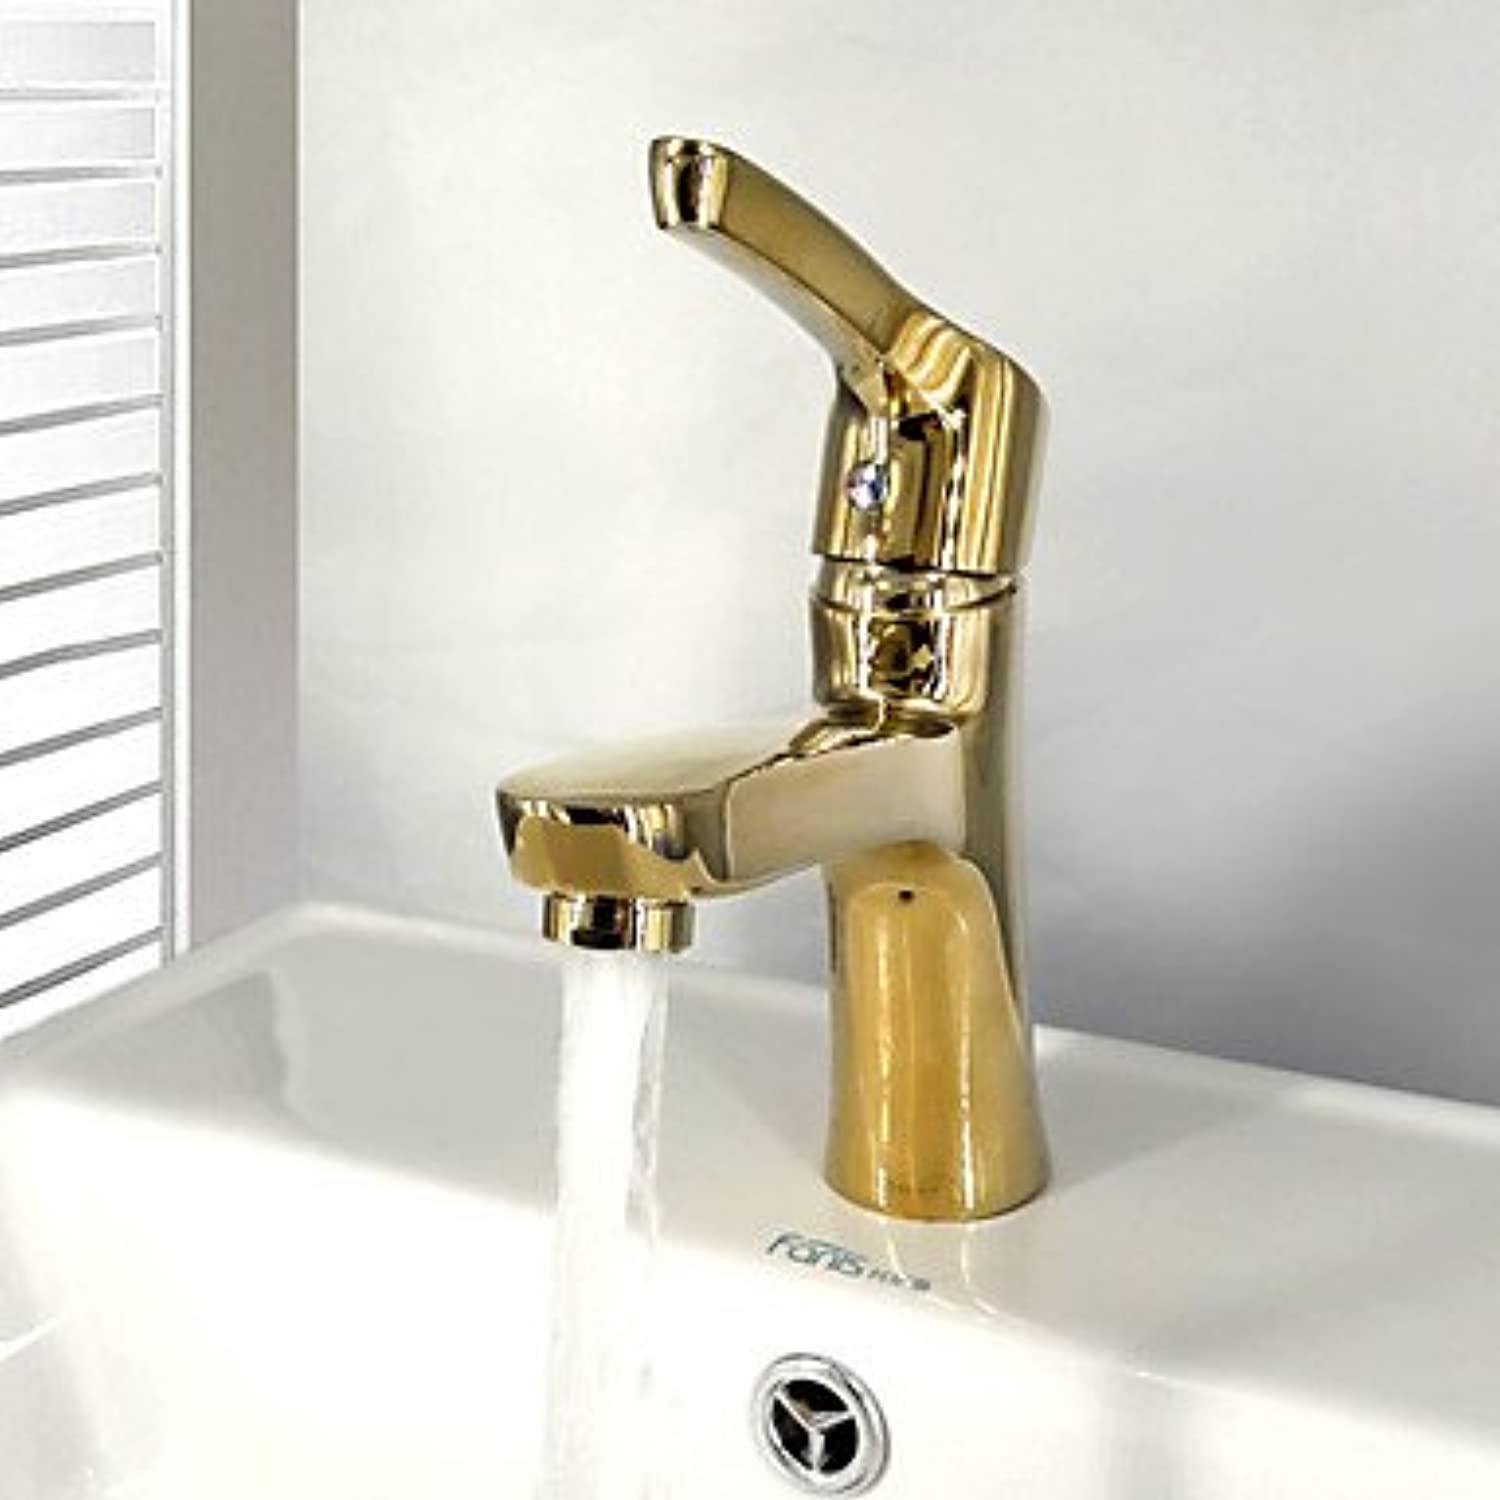 ZLL Contemporary Centerset Widespread with Ceramic Valve Single Handle One Hole for Ti-PVD , Bathroom Sink Faucet